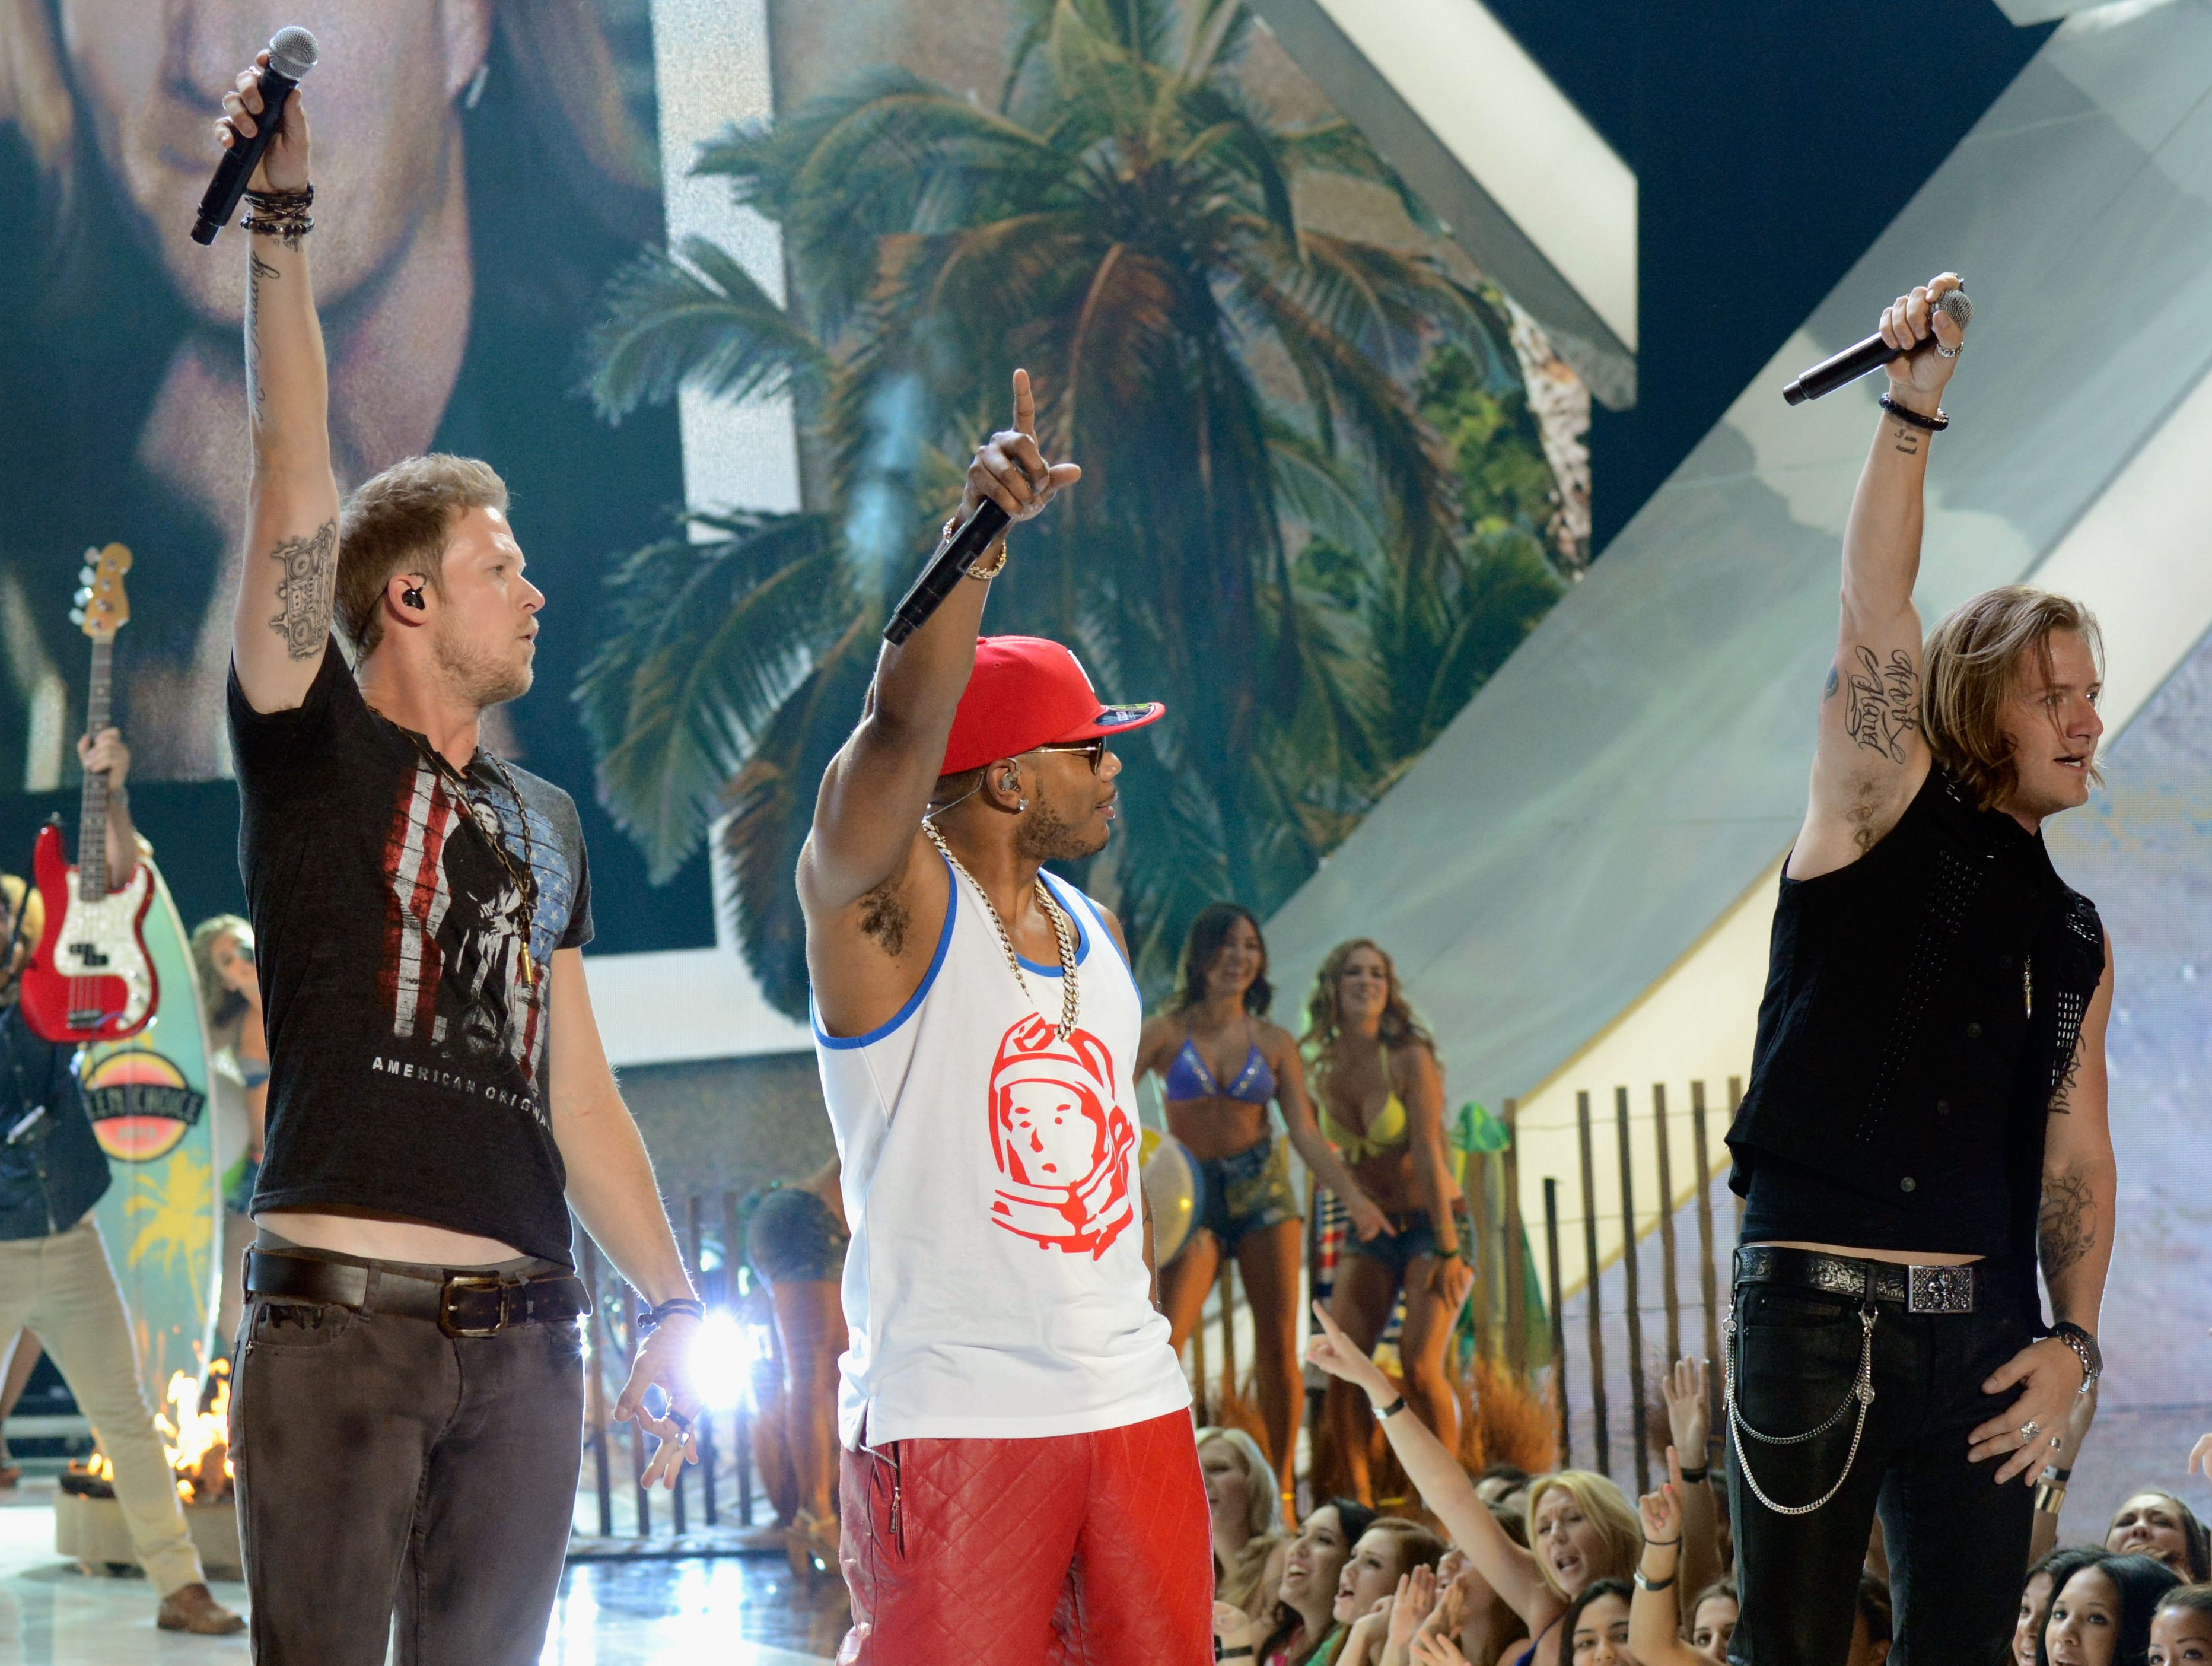 Recording artists Nelly and Florida Georgia Line members Brian Kelley and Tyler Hubbard perform.